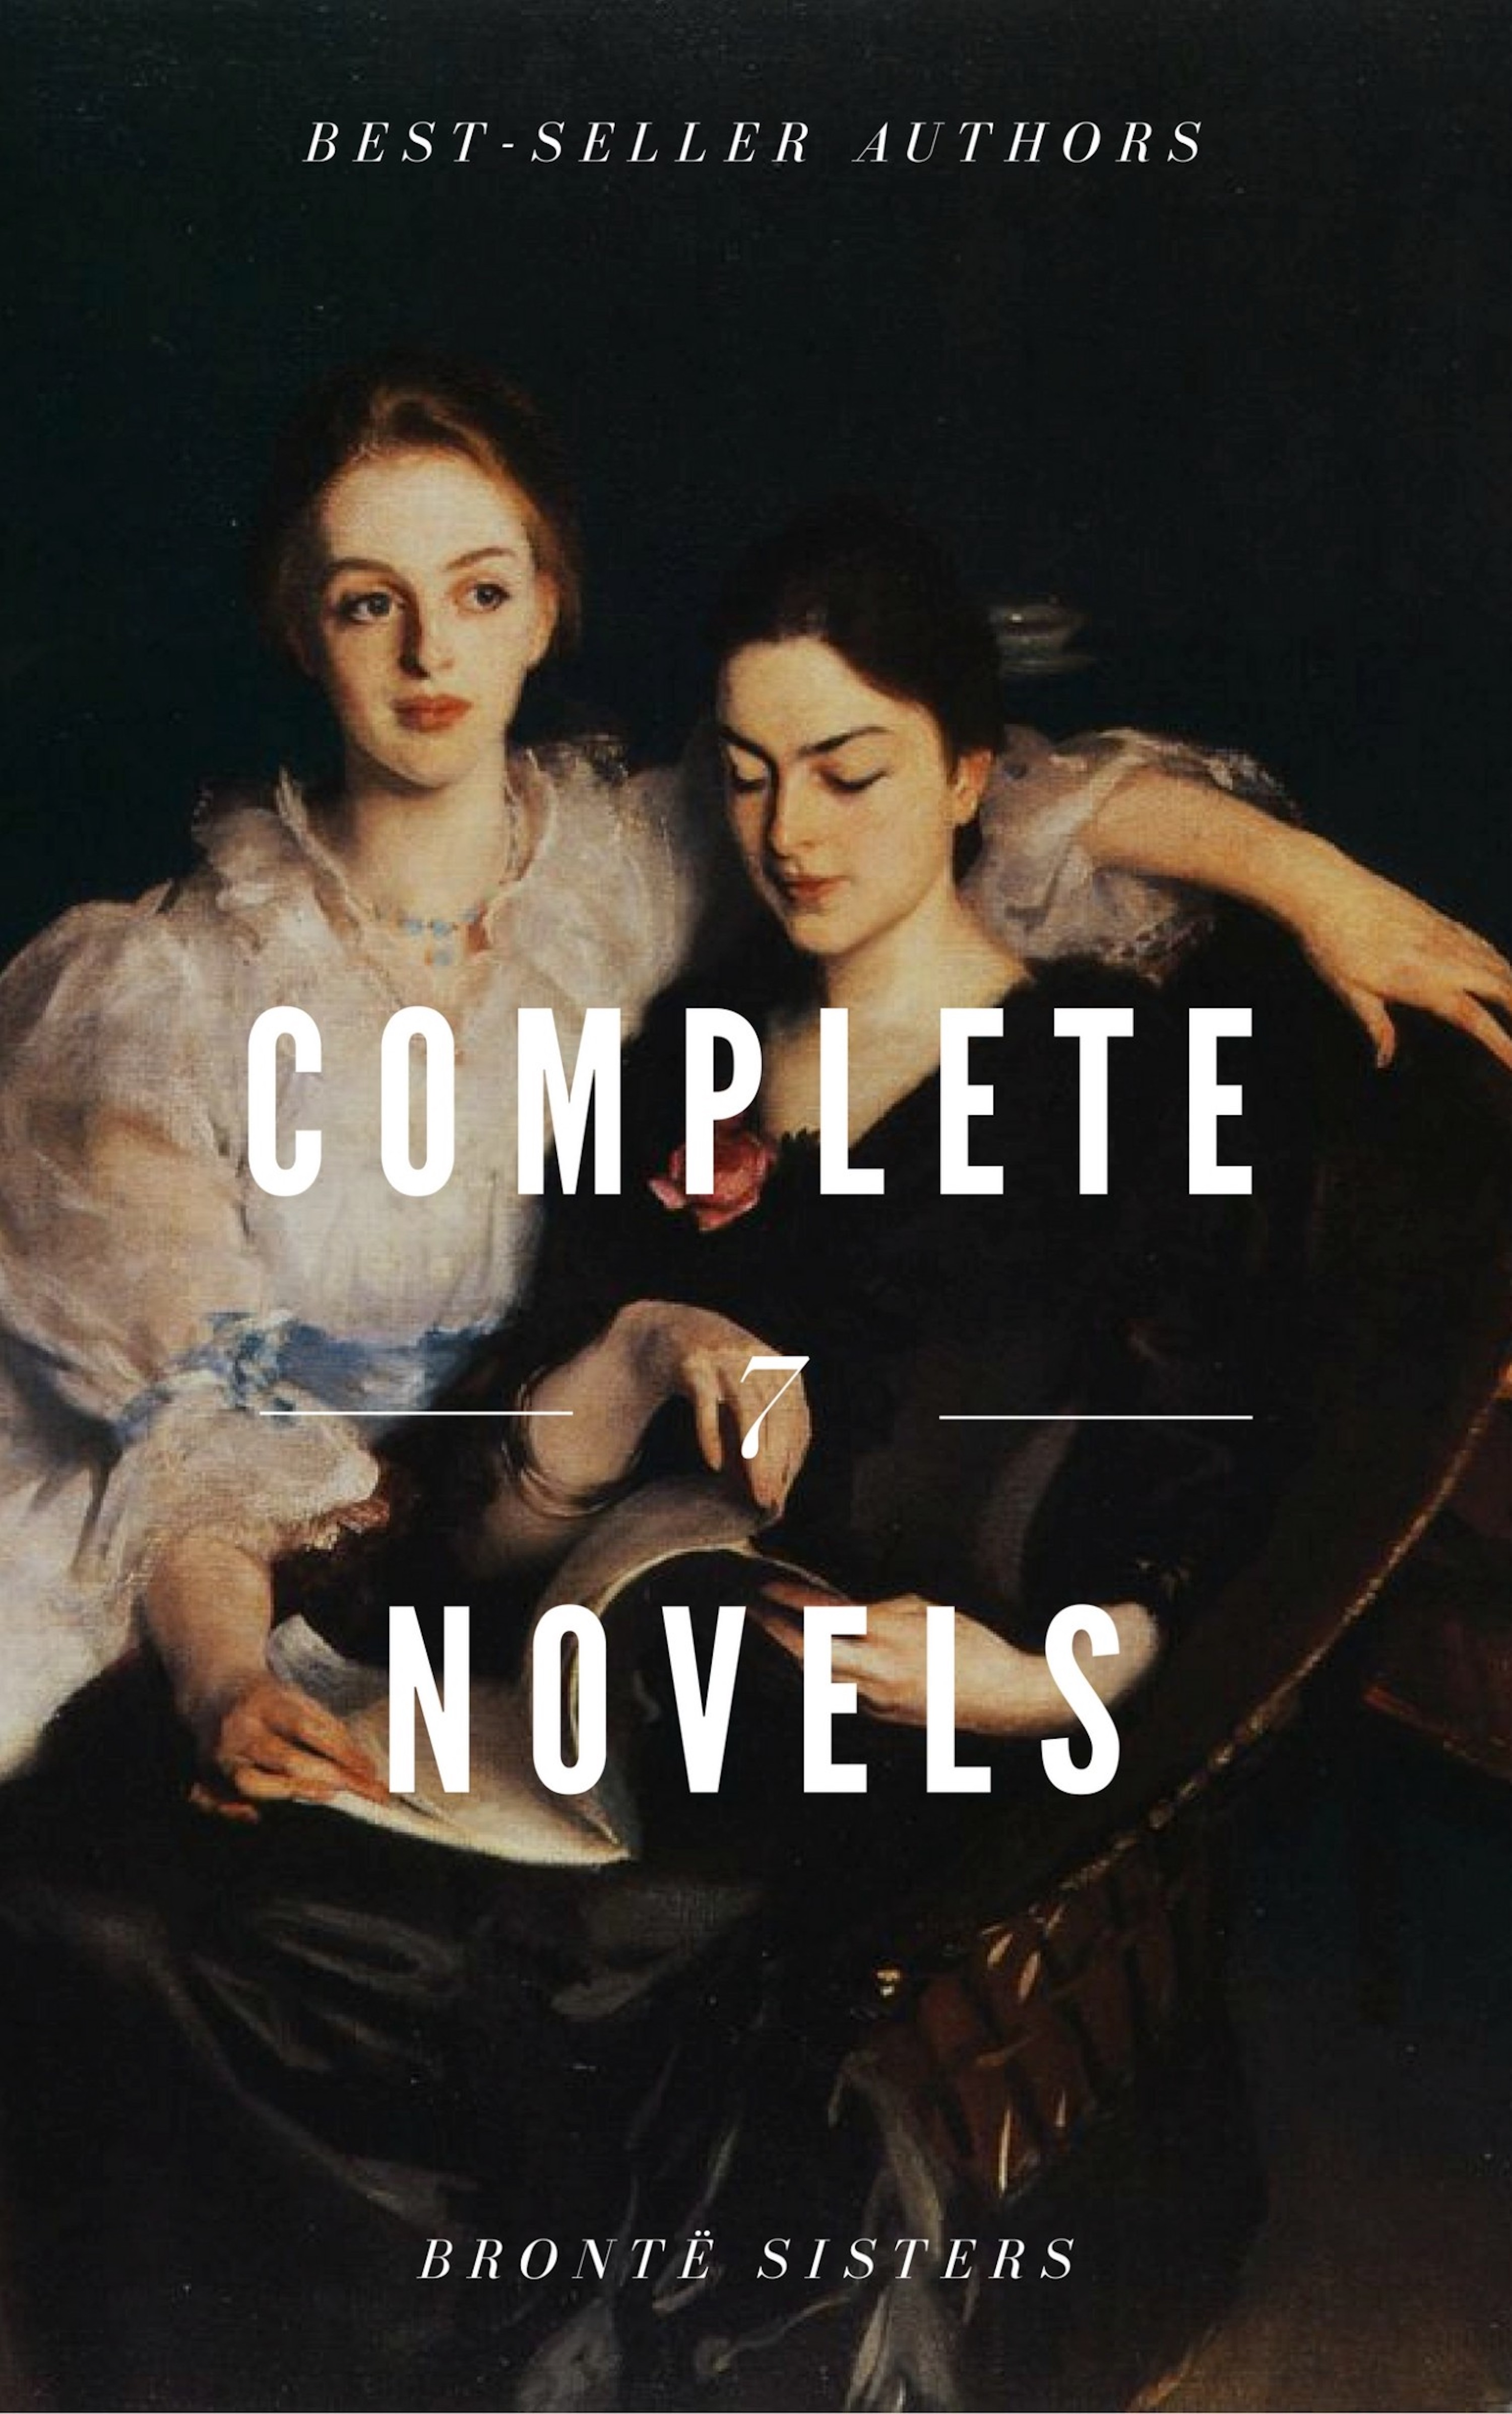 the bronte sisters complete novels